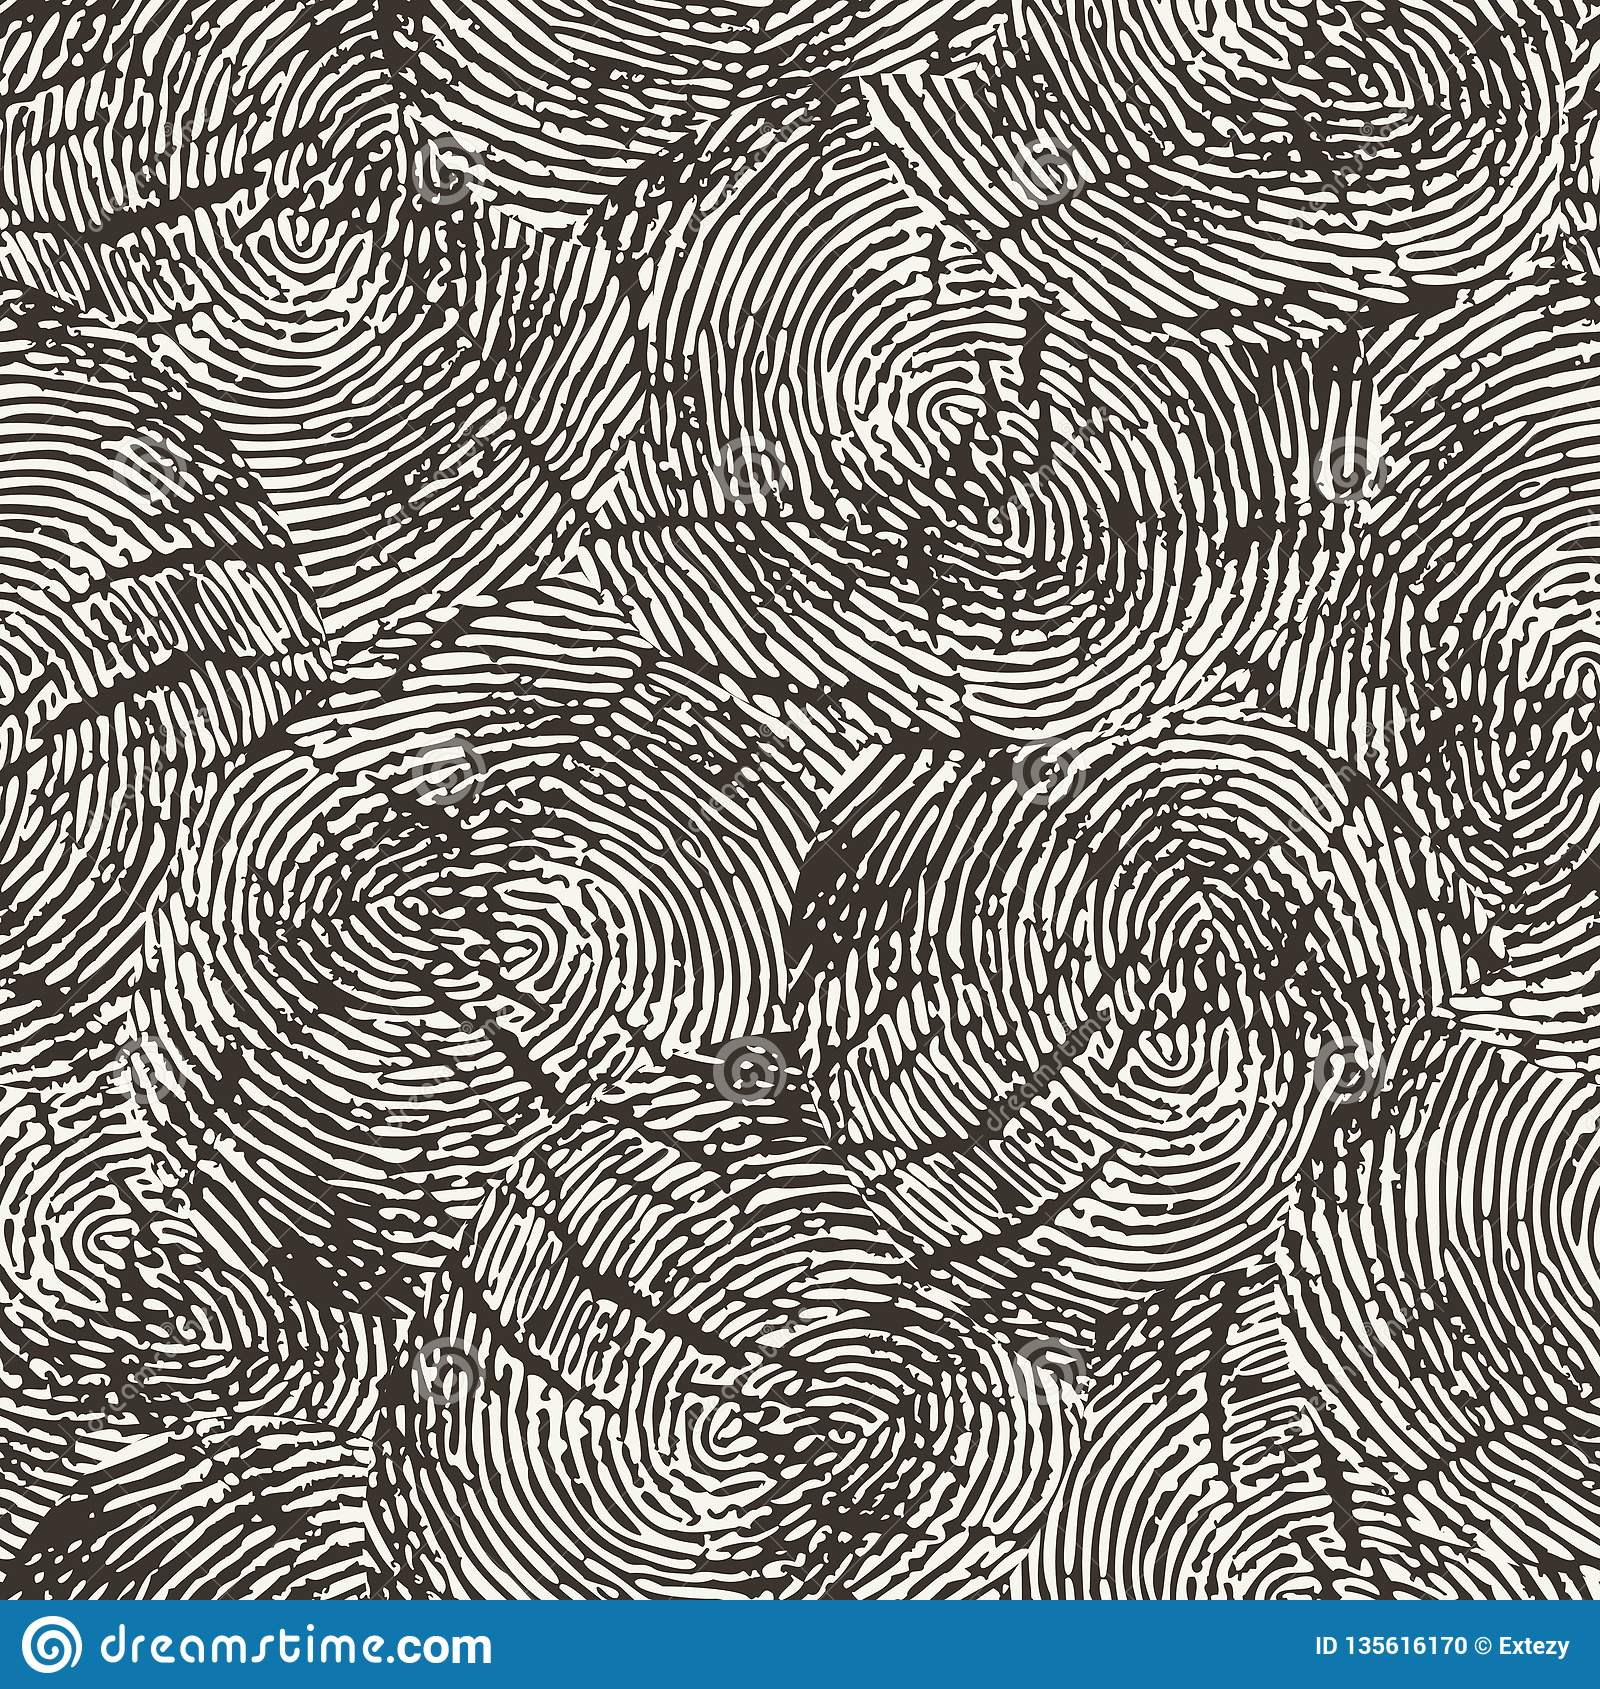 Vector Seamless Pattern Repeating Monochrome Organic Shapes Background Stock Vector Illustration Of Macro Conte 135616170